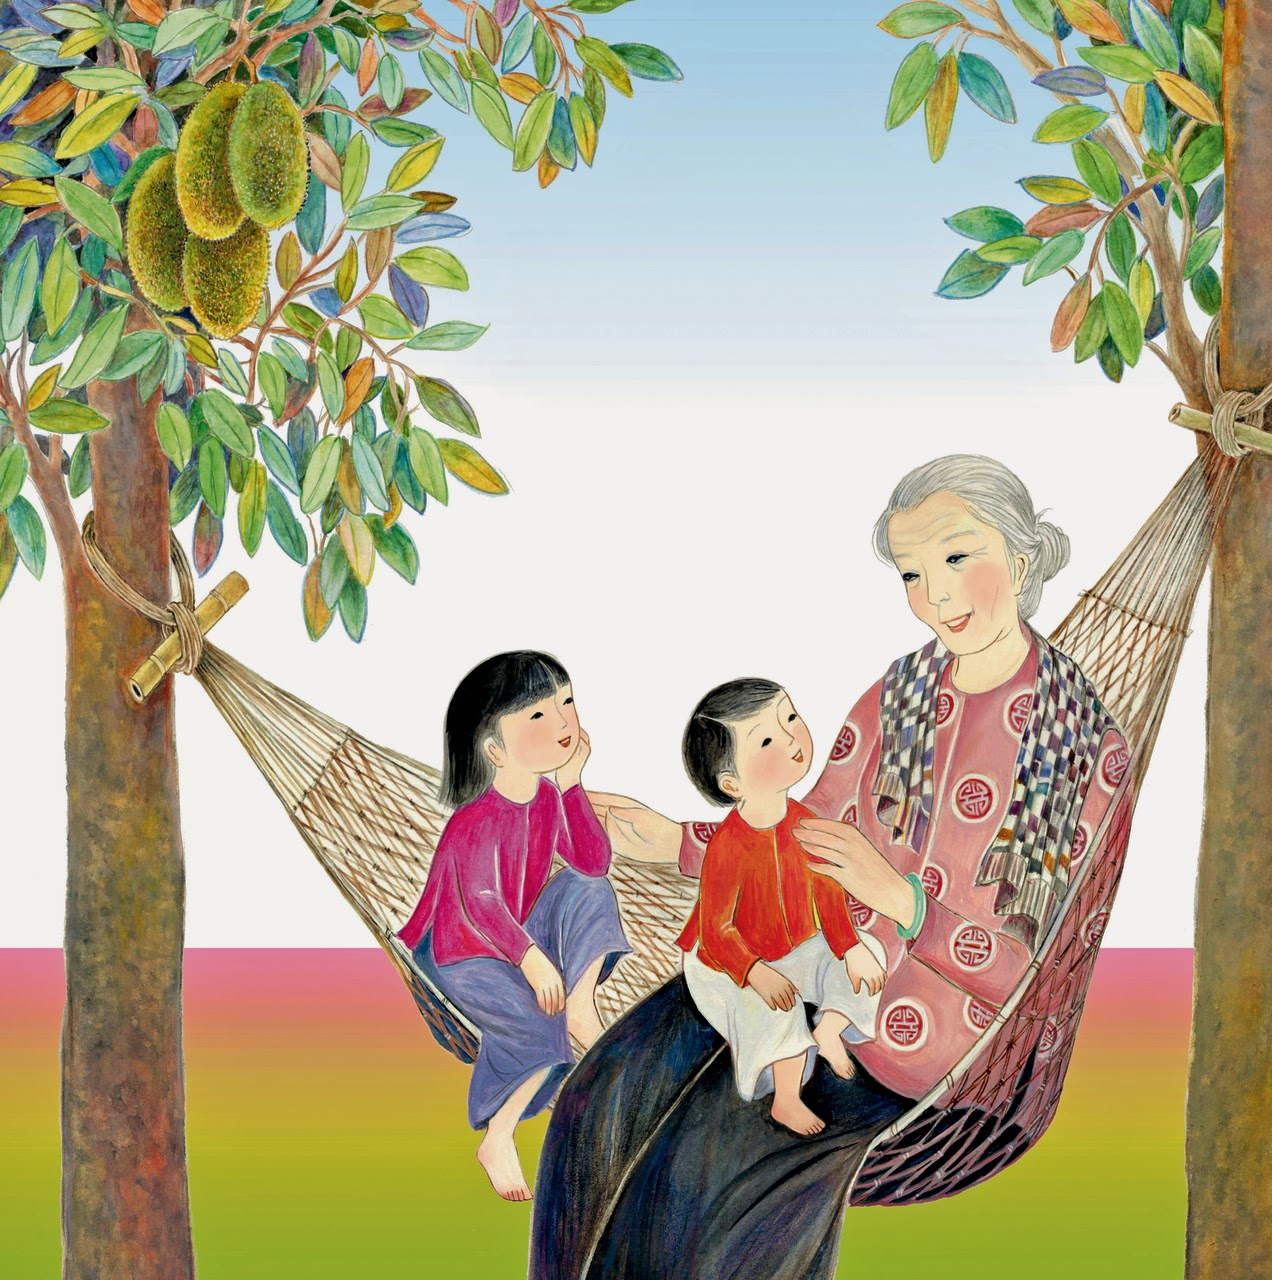 http://www.tuttlepublishing.com/books-by-country/vietnamese-childrens-favorite-stories-hardcover-with-jacket